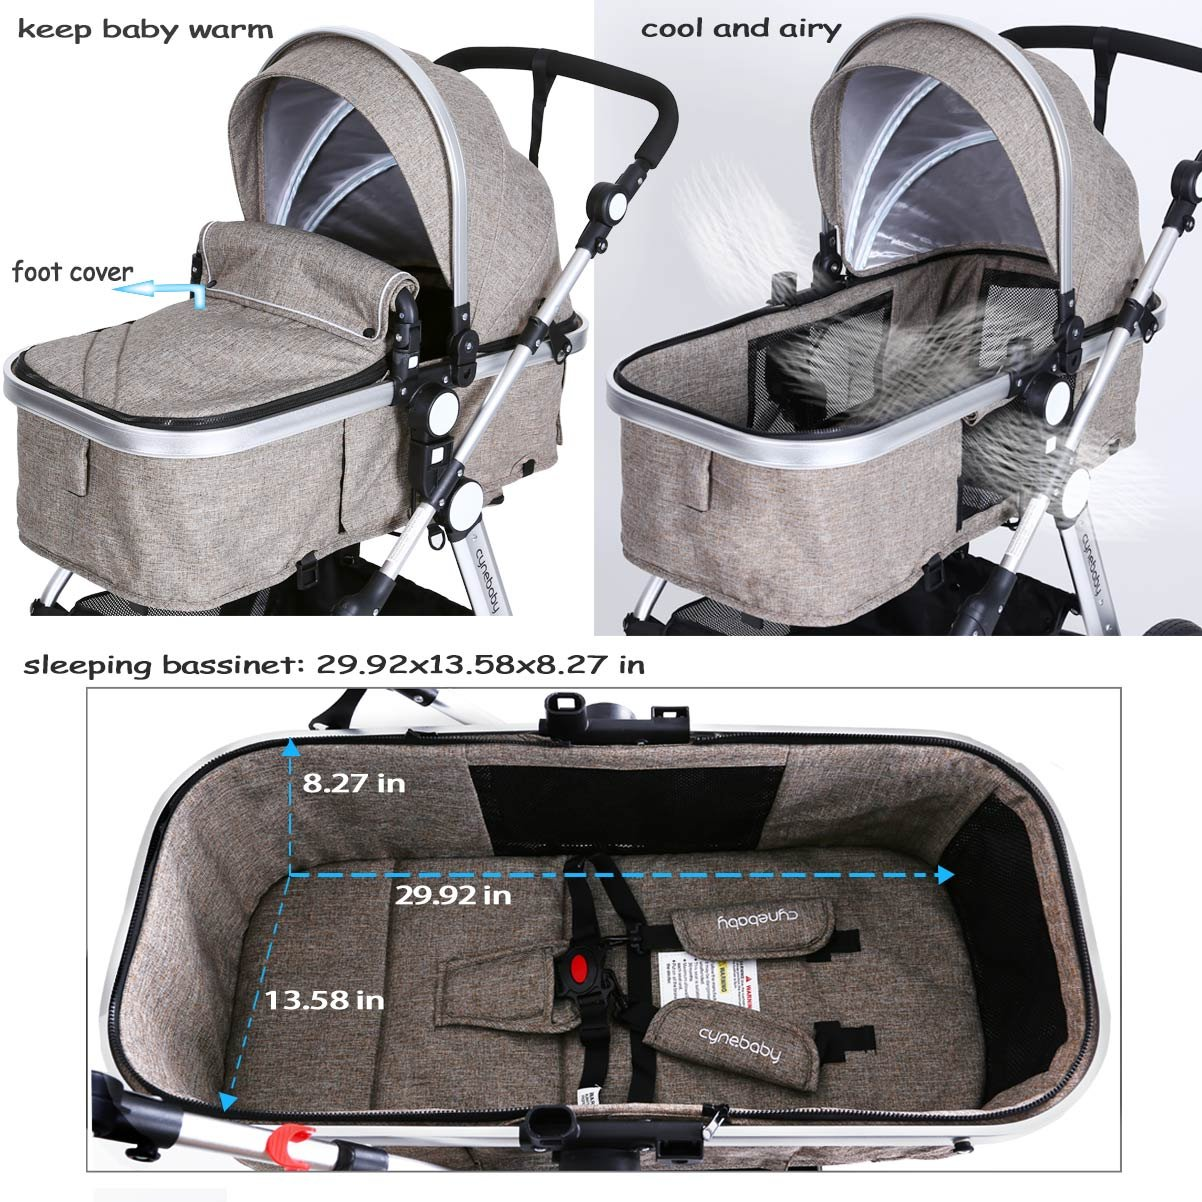 Infant Toddler Baby Stroller Carriage - Cynebaby Compact Pram Strollers add Tray (Khaki) by cynebaby (Image #7)